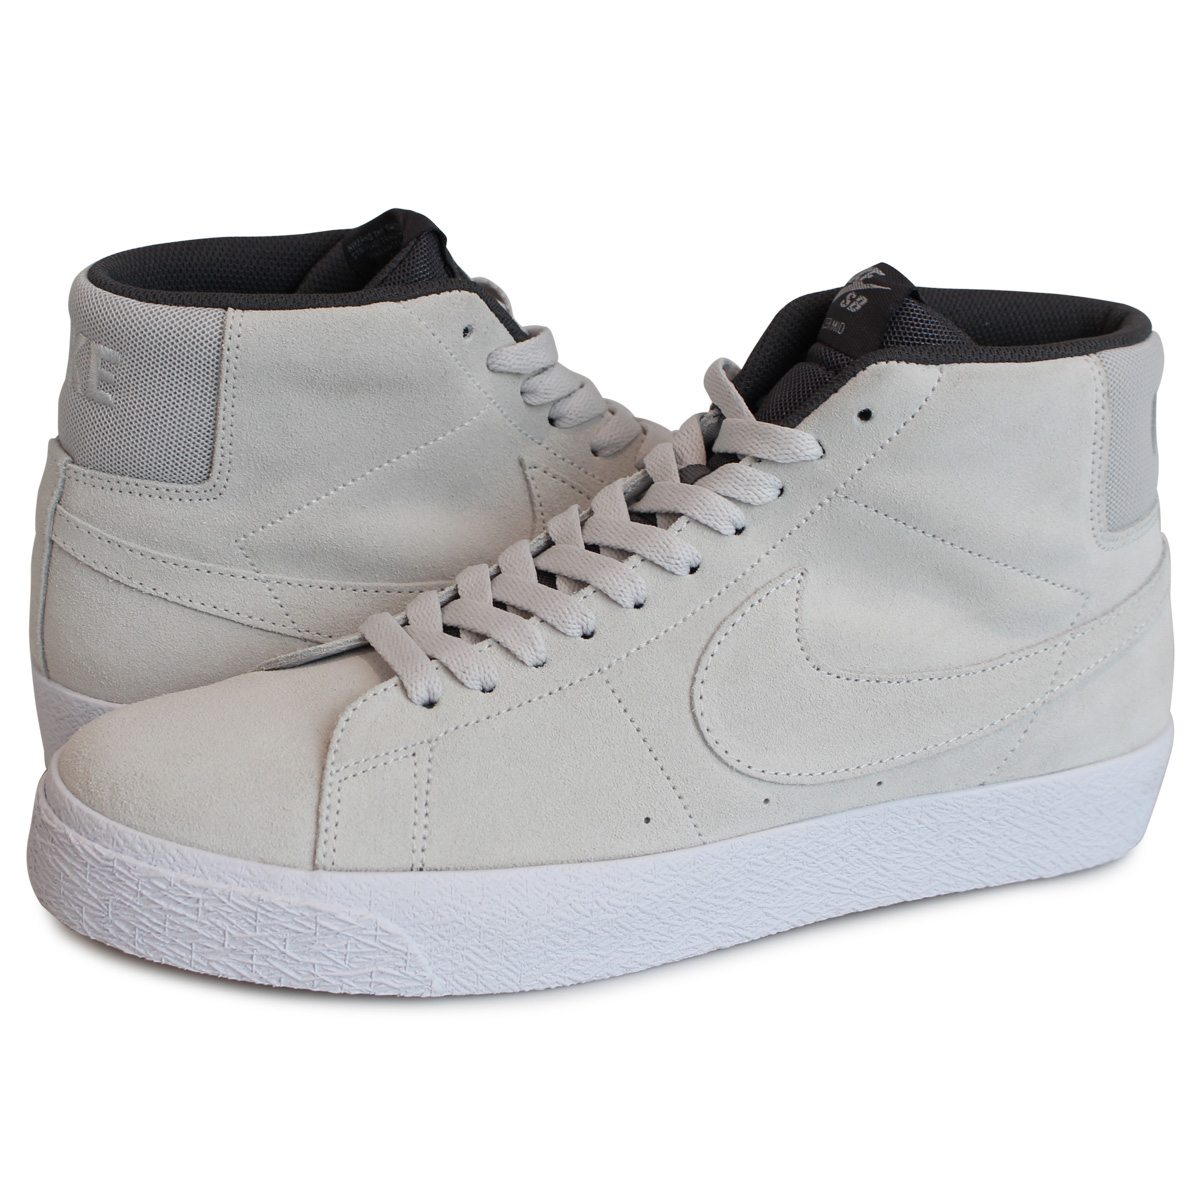 new concept 895fd d5aa1 Nike NIKE SB blazer mid sneakers men BLAZER MID gray 864,349-003 [the load  planned additional arrival in reservation product 9/6 containing]